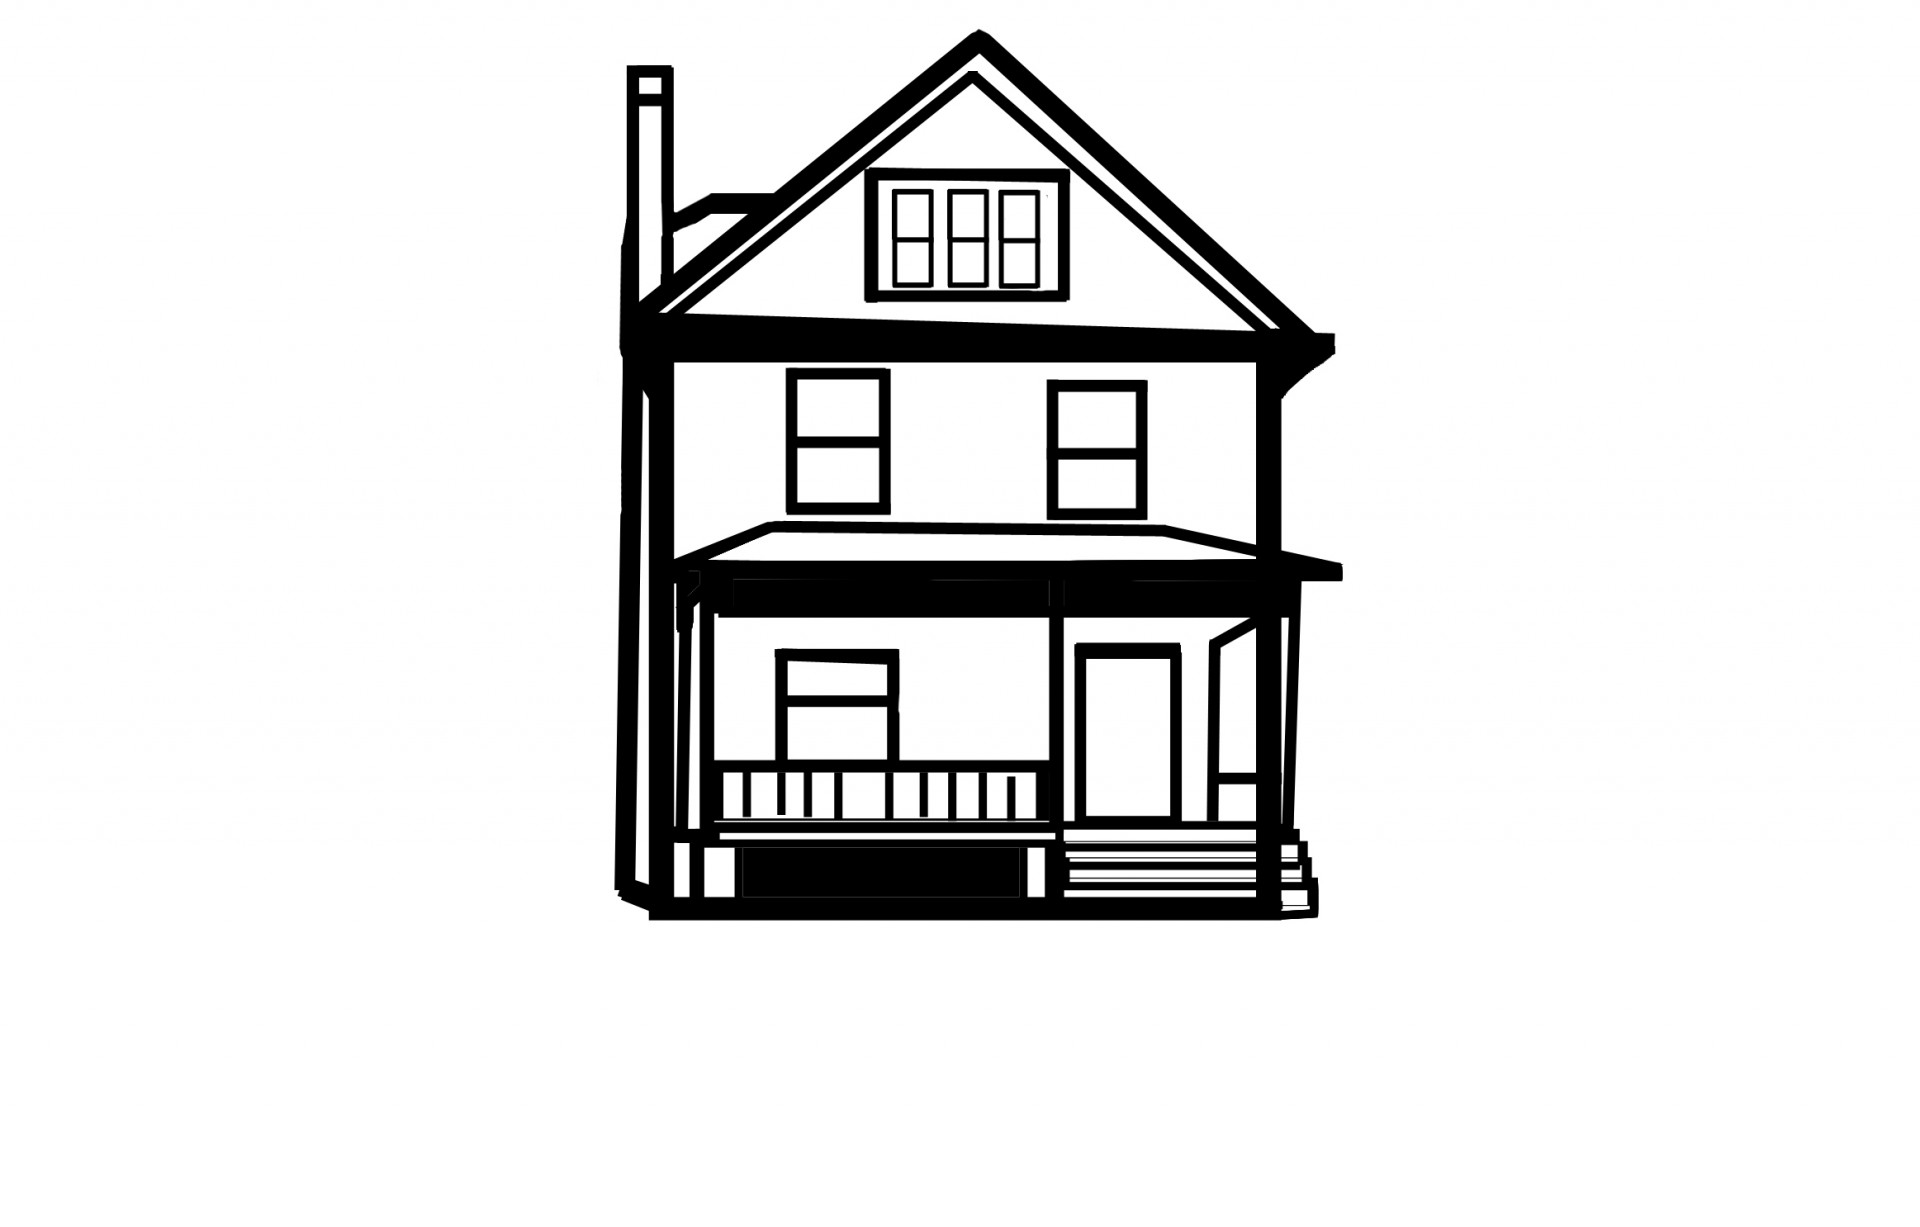 House Line Drawing Free Stock Photo.